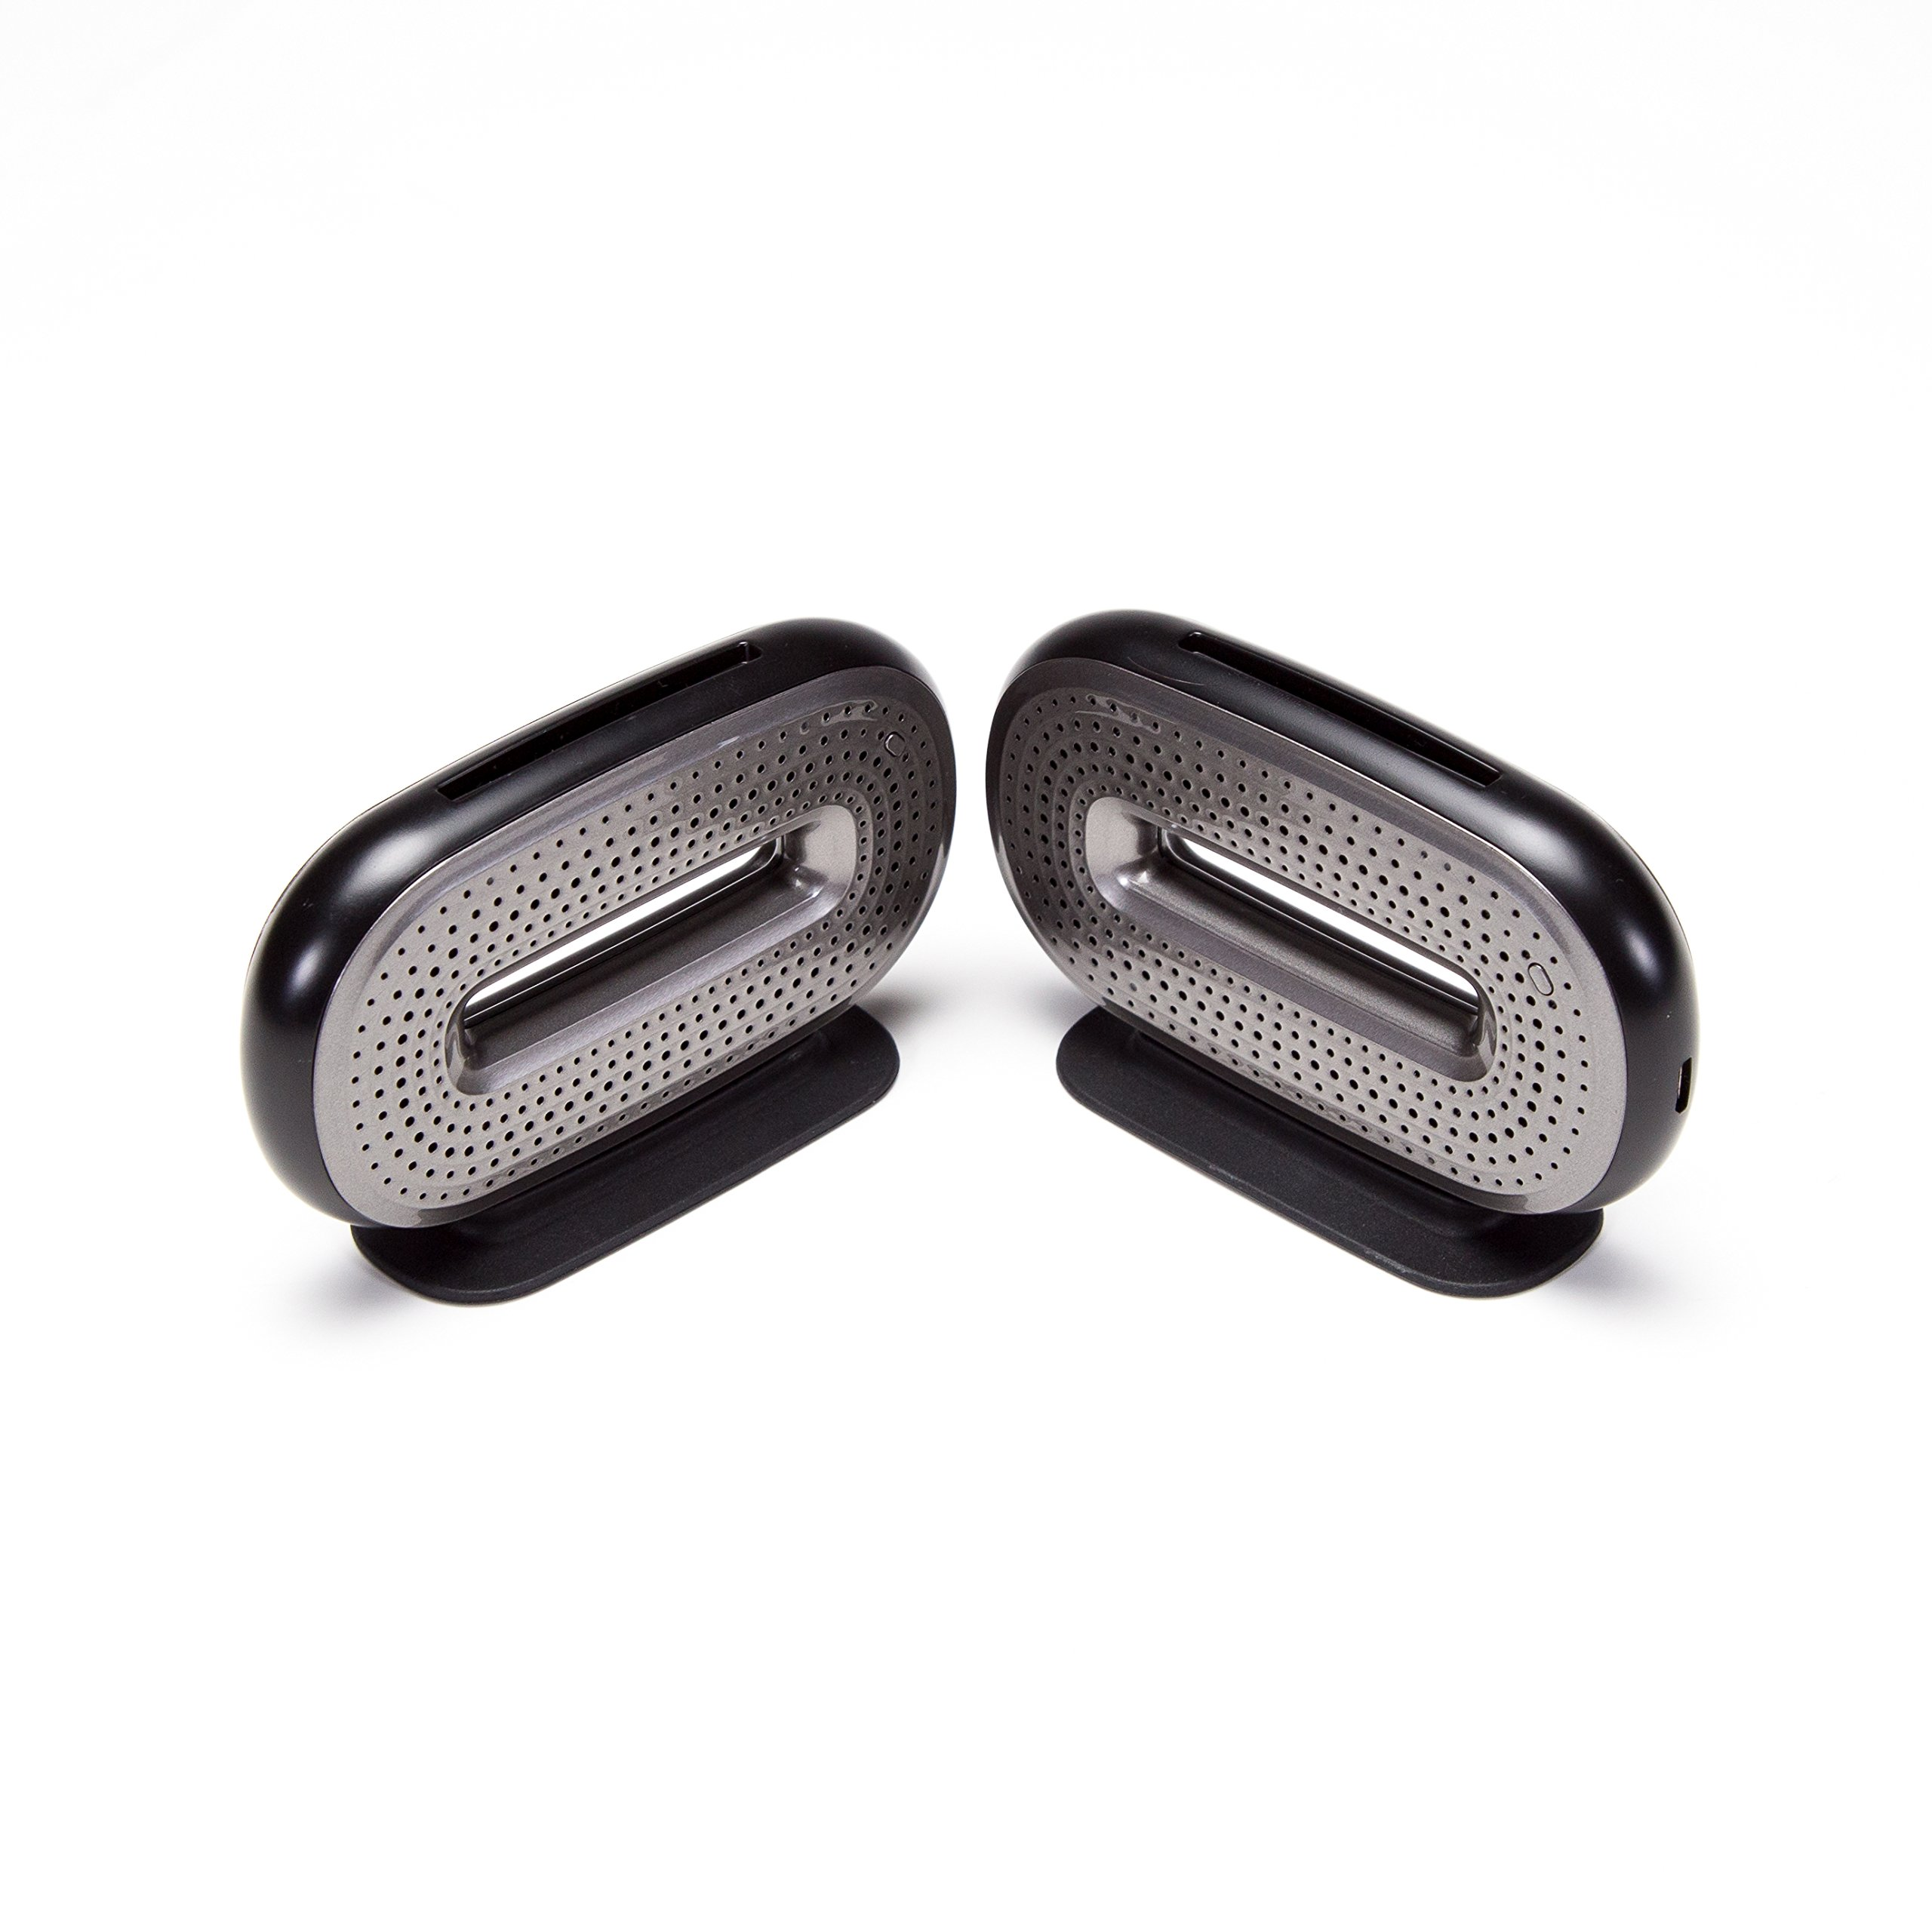 Mini-O Portable Bluetooth Speaker Pair - Pocketable and Powerful with Unparalleled Audio Technology, True Wireless Stereo Sound, High Resolution Audio for iPhone, iPad, Android, and More - Black